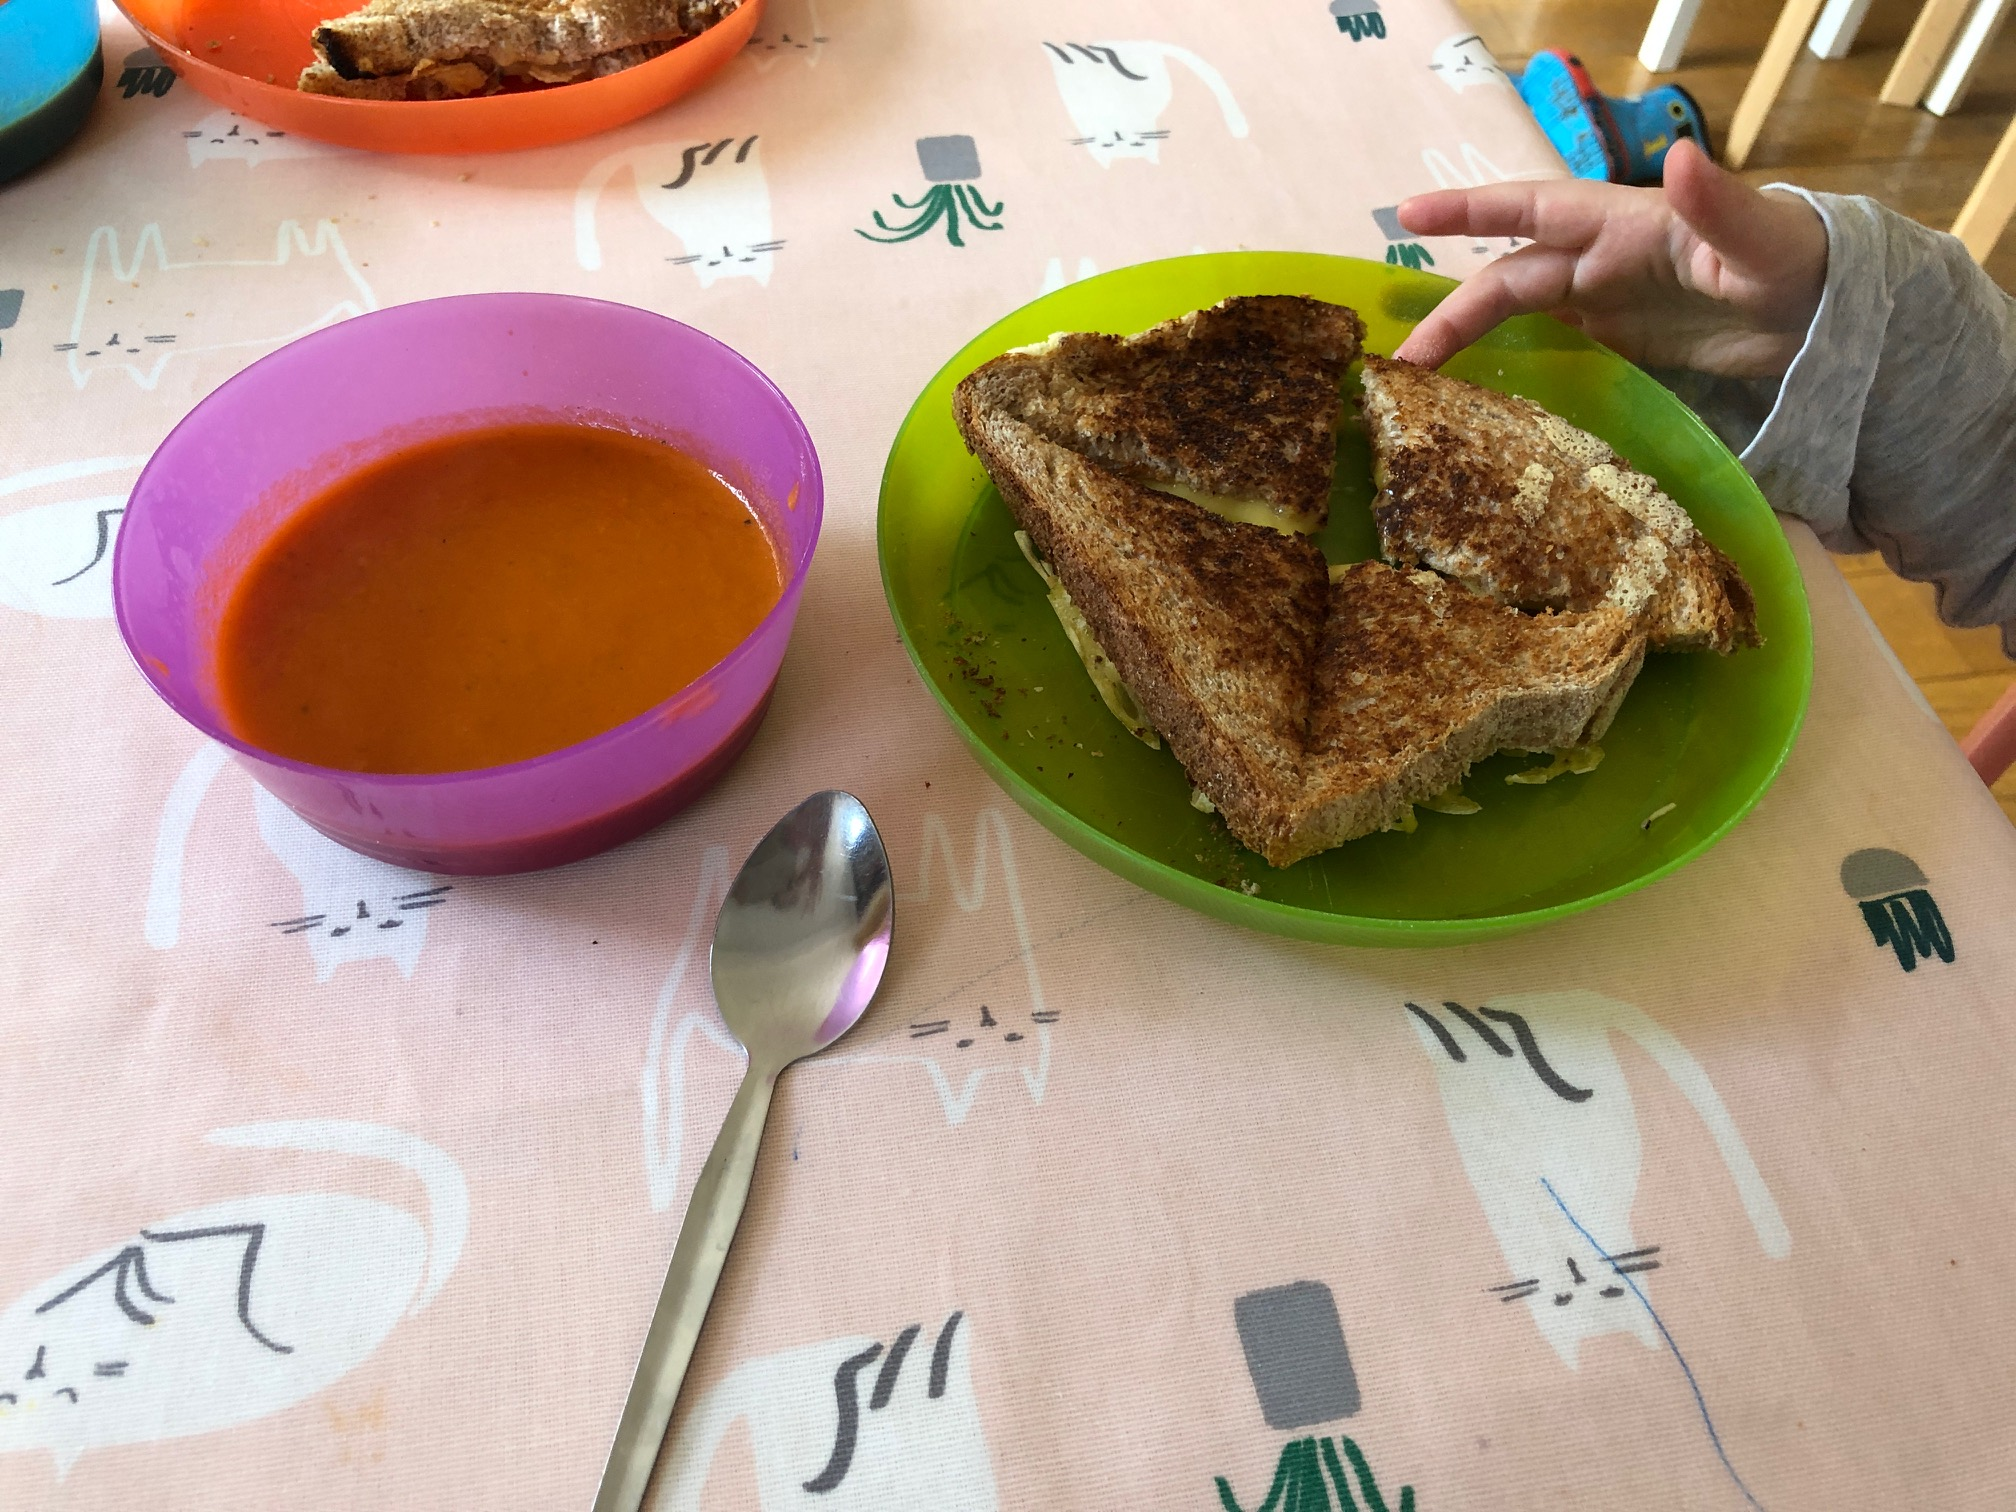 A picture of the soup and grilled cheese sandwich on the table